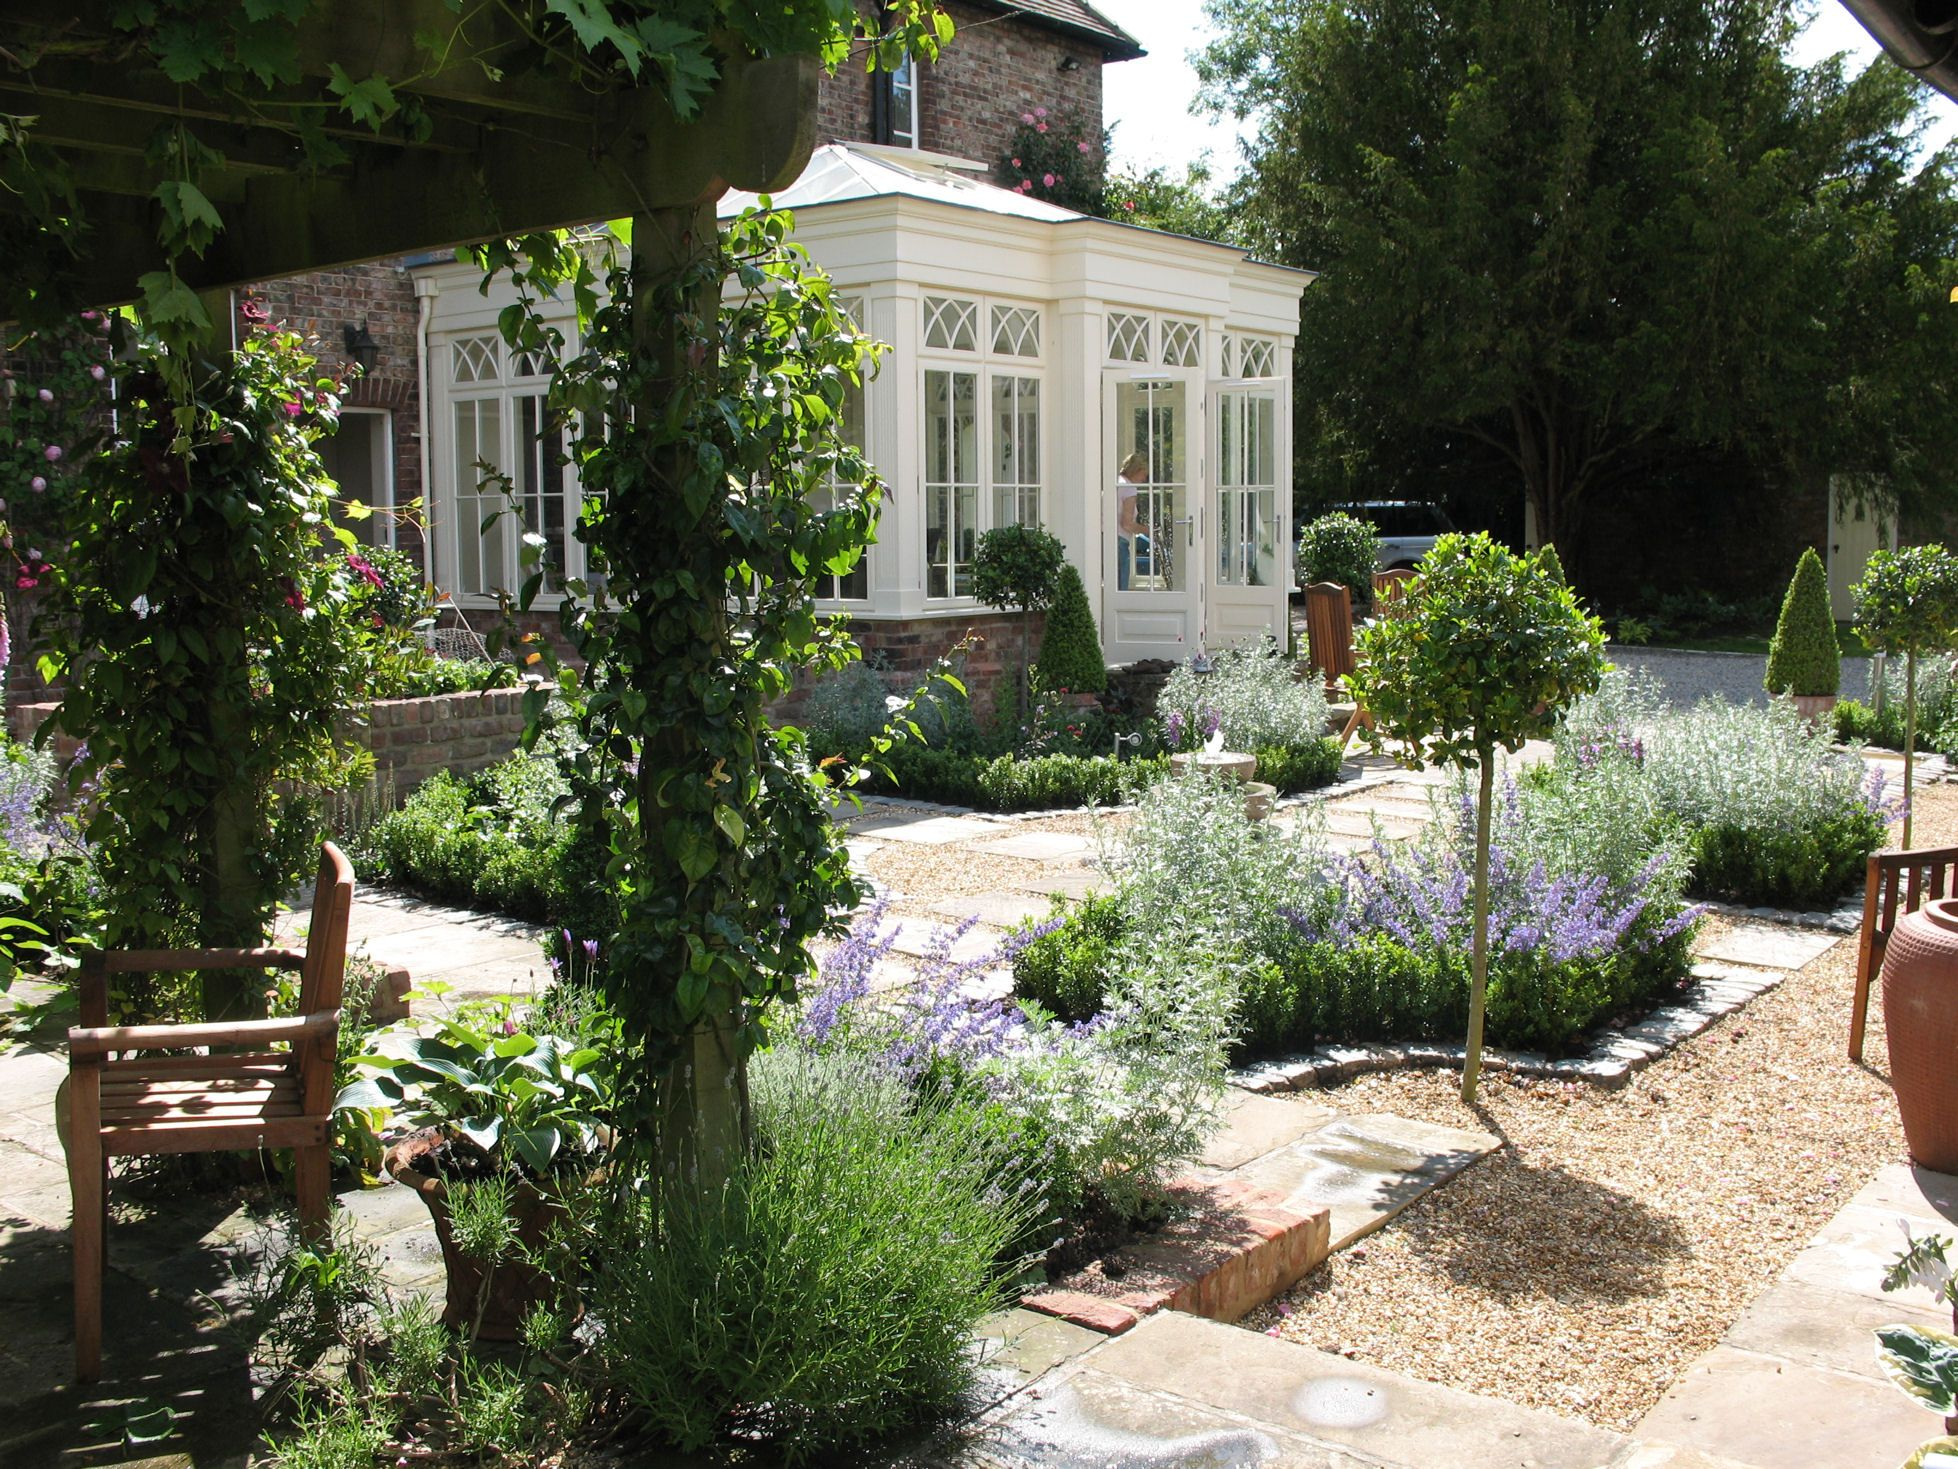 A formal courtyard garden near York. Designer Garden in